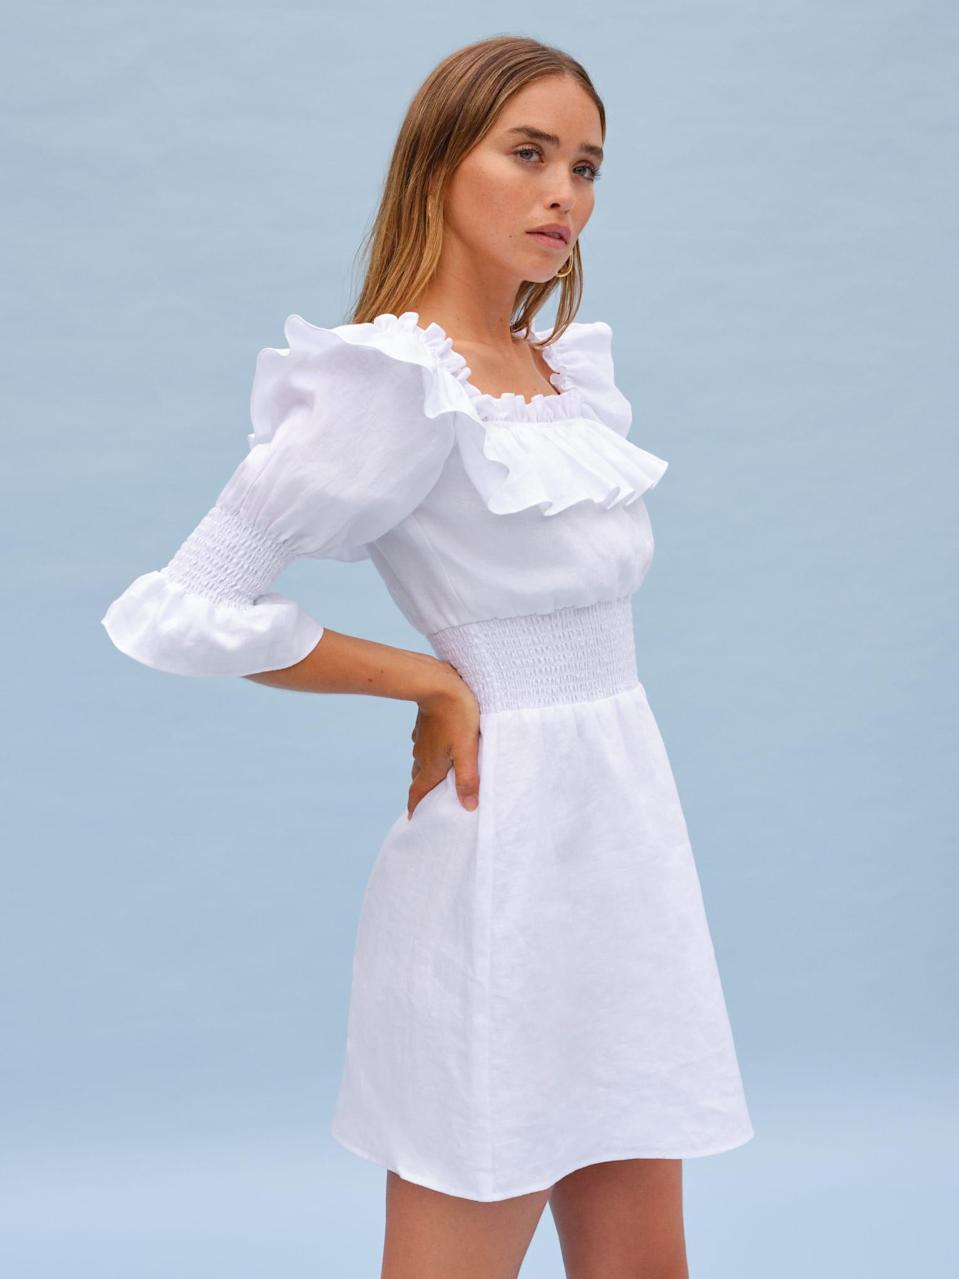 """<h2>Micro-Wedding Frocks</h2><br><br><strong>Reformation</strong> Lowell Dress, $, available at <a href=""""https://go.skimresources.com/?id=30283X879131&url=https%3A%2F%2Fwww.thereformation.com%2Fproducts%2Flowell-dress%3Fcolor%3DWhite"""" rel=""""nofollow noopener"""" target=""""_blank"""" data-ylk=""""slk:Reformation"""" class=""""link rapid-noclick-resp"""">Reformation</a>"""